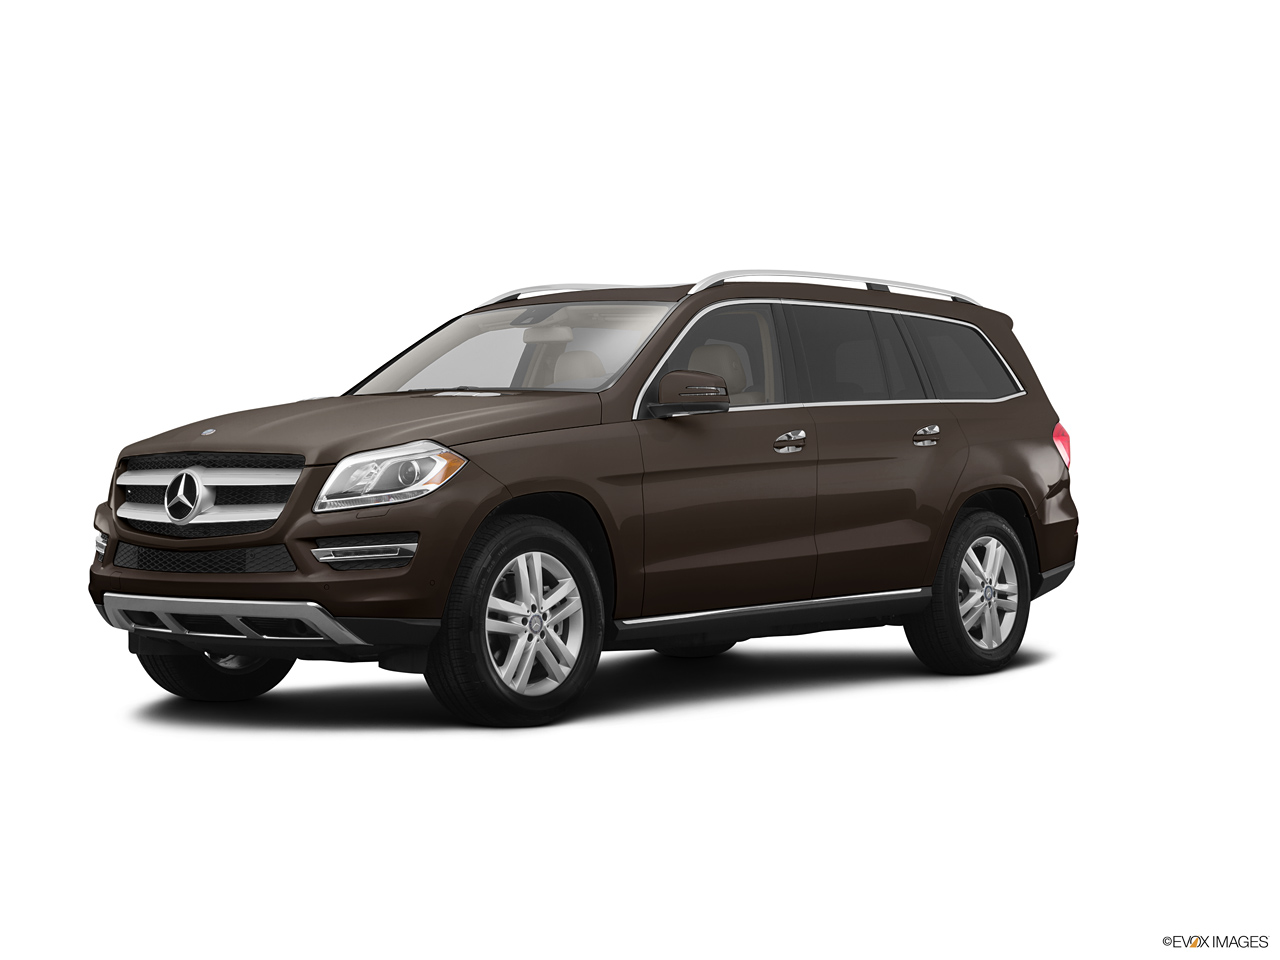 Car pictures list for mercedes benz gl class 2016 gl 500 for Mercedes benz list